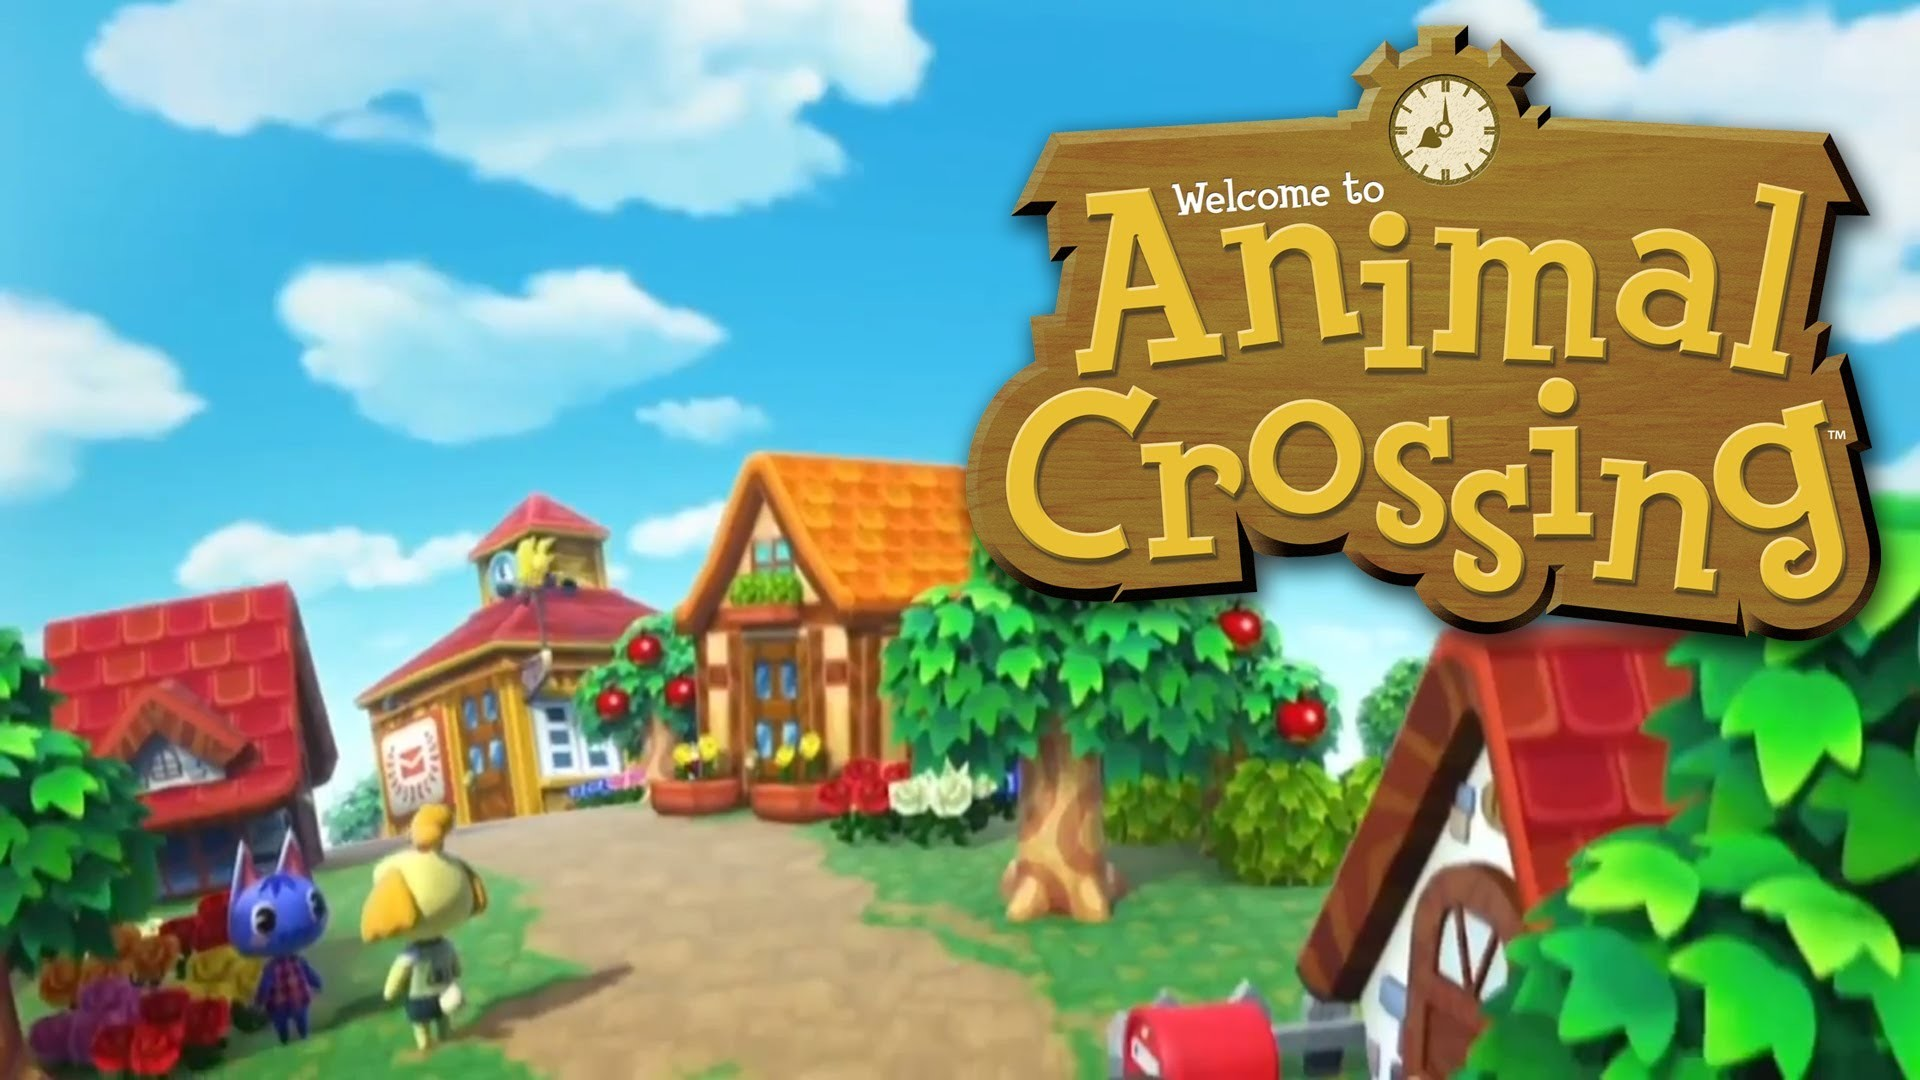 Wiki Wallpapers Hd Animal Crossing Pic Wpe0012464   - Animal Crossing Gamecube Logo - HD Wallpaper